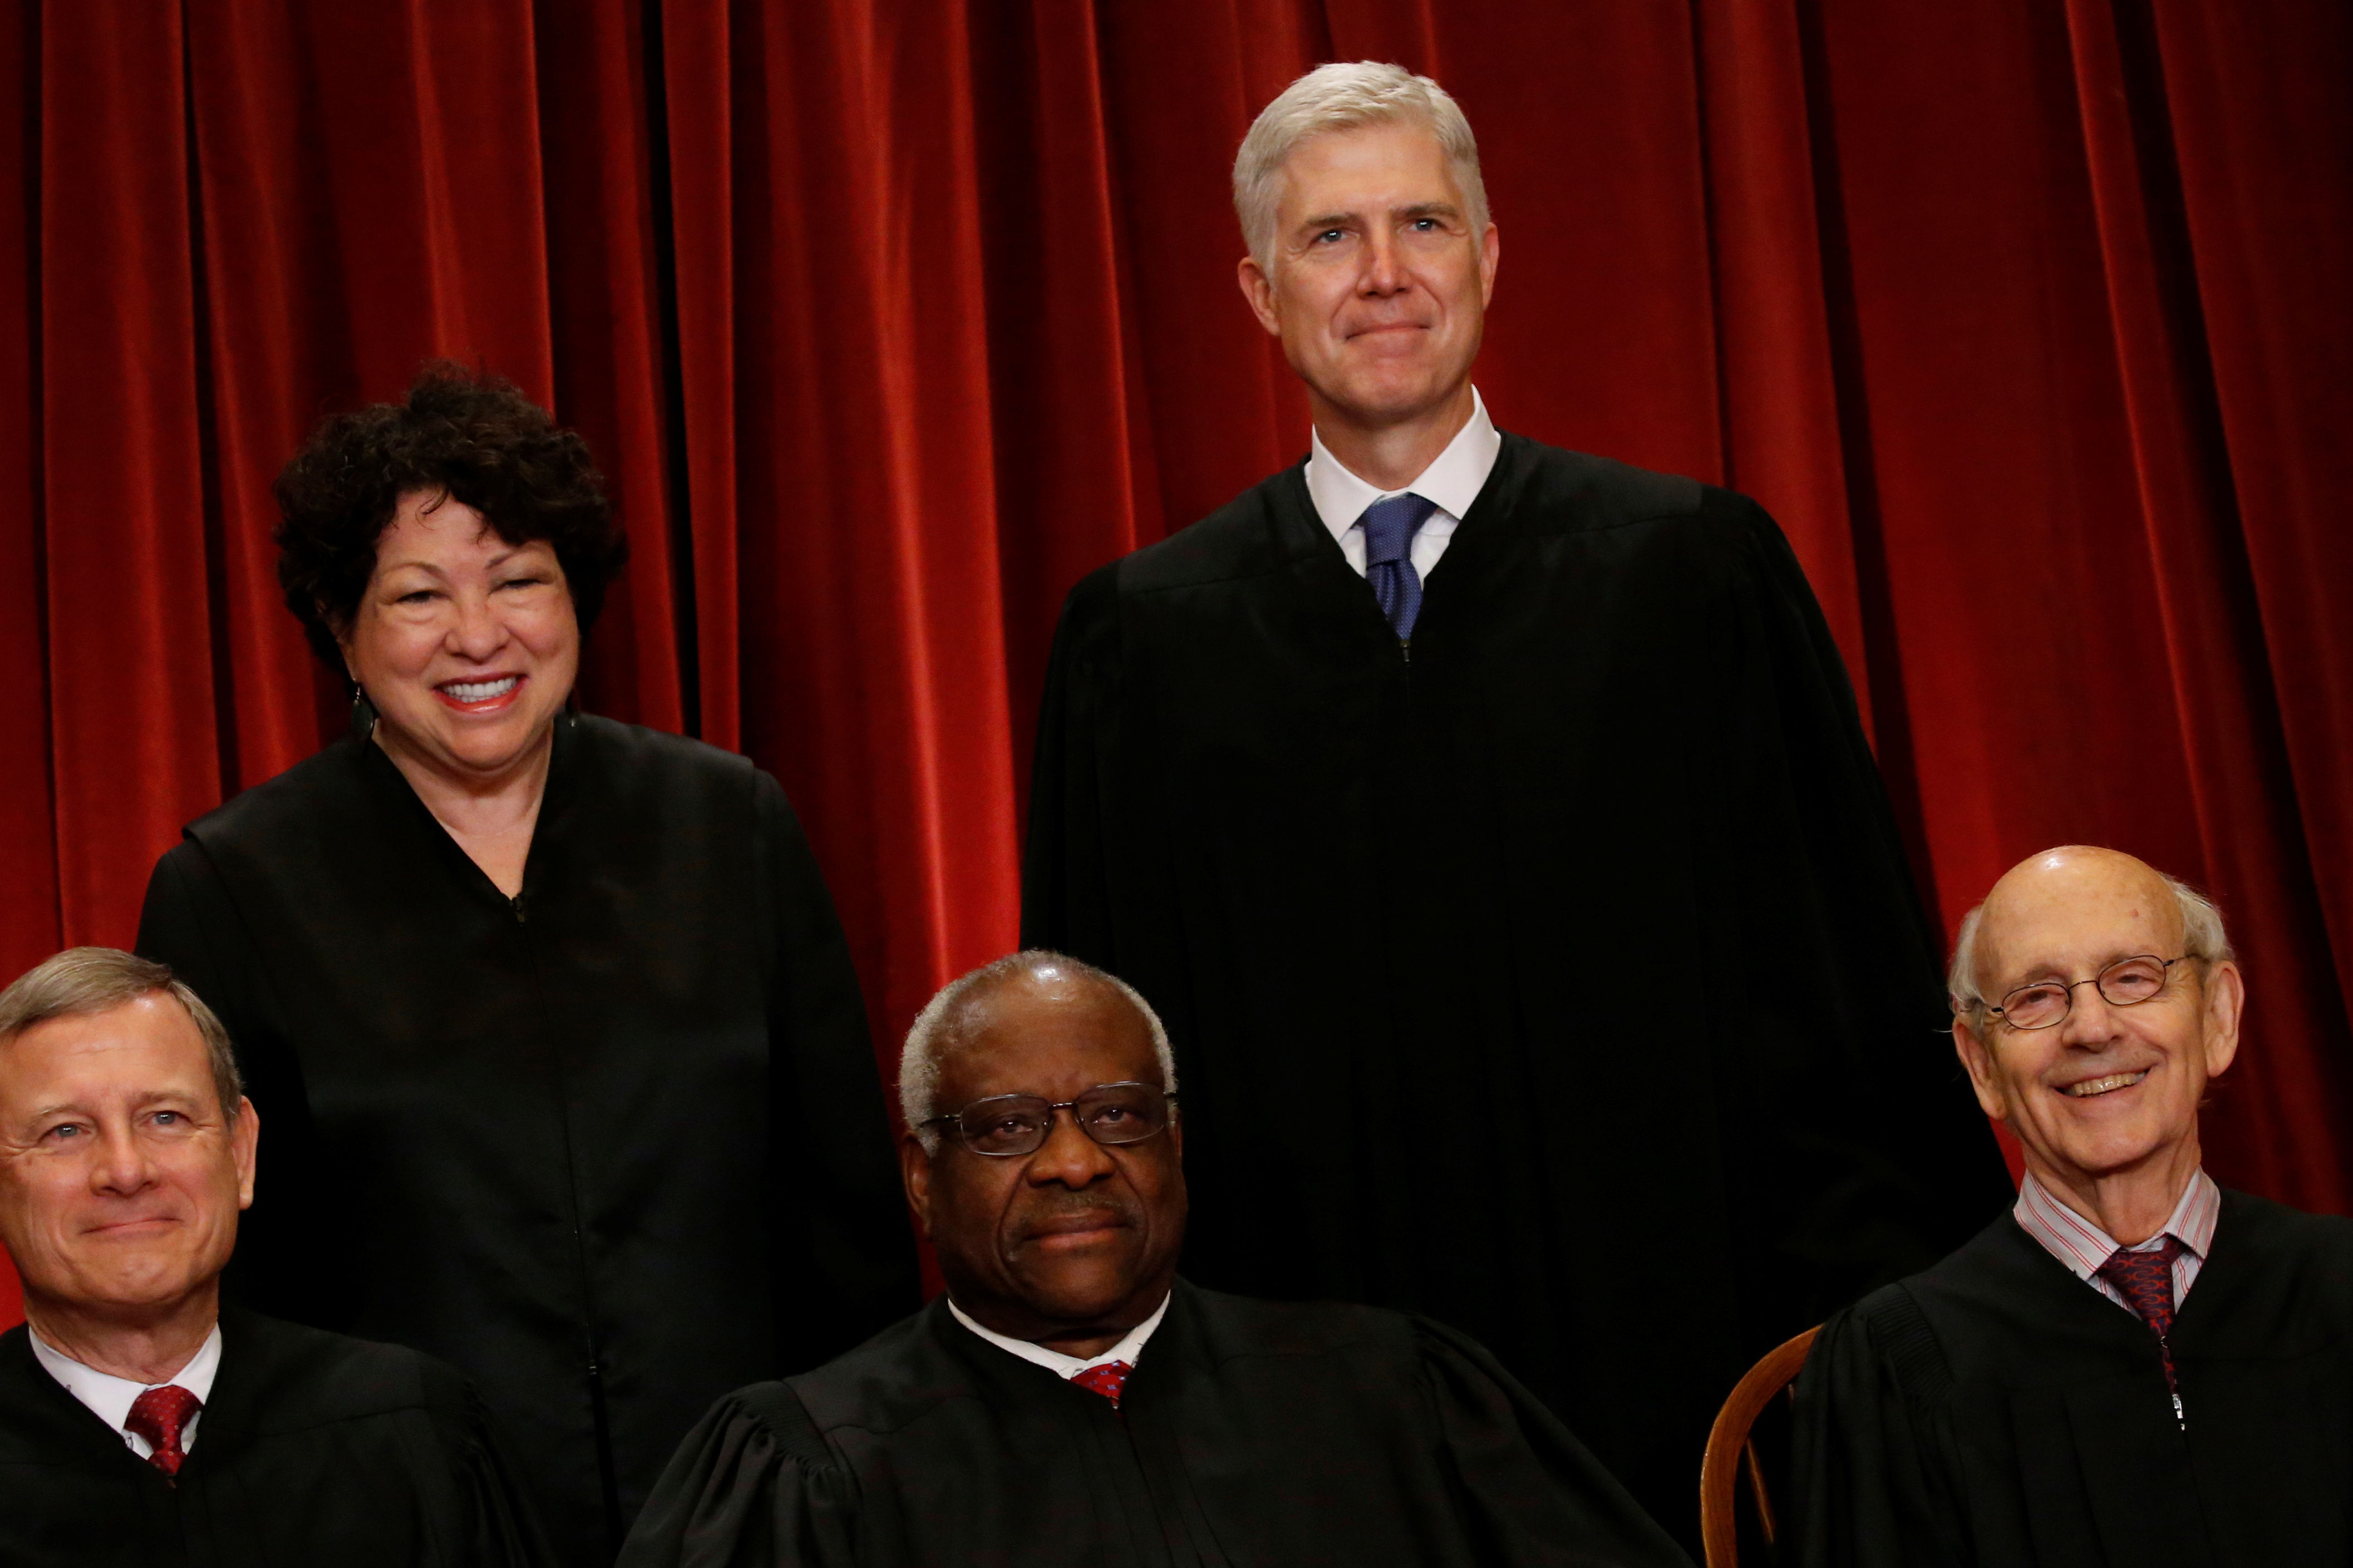 U.S. Supreme Court Justice Neil Gorsuch (top R) smiles as he joins his fellow justices, including Chief Justice John Roberts (L-R), Justice Sonia Sotomayor, Justice Clarence Thomas and Justice Stephen Breyer, in taking a new family photo including Gorsuch, their most recent addition, at the Supreme Court building in Washington, D.C. REUTERS/Jonathan Ernst